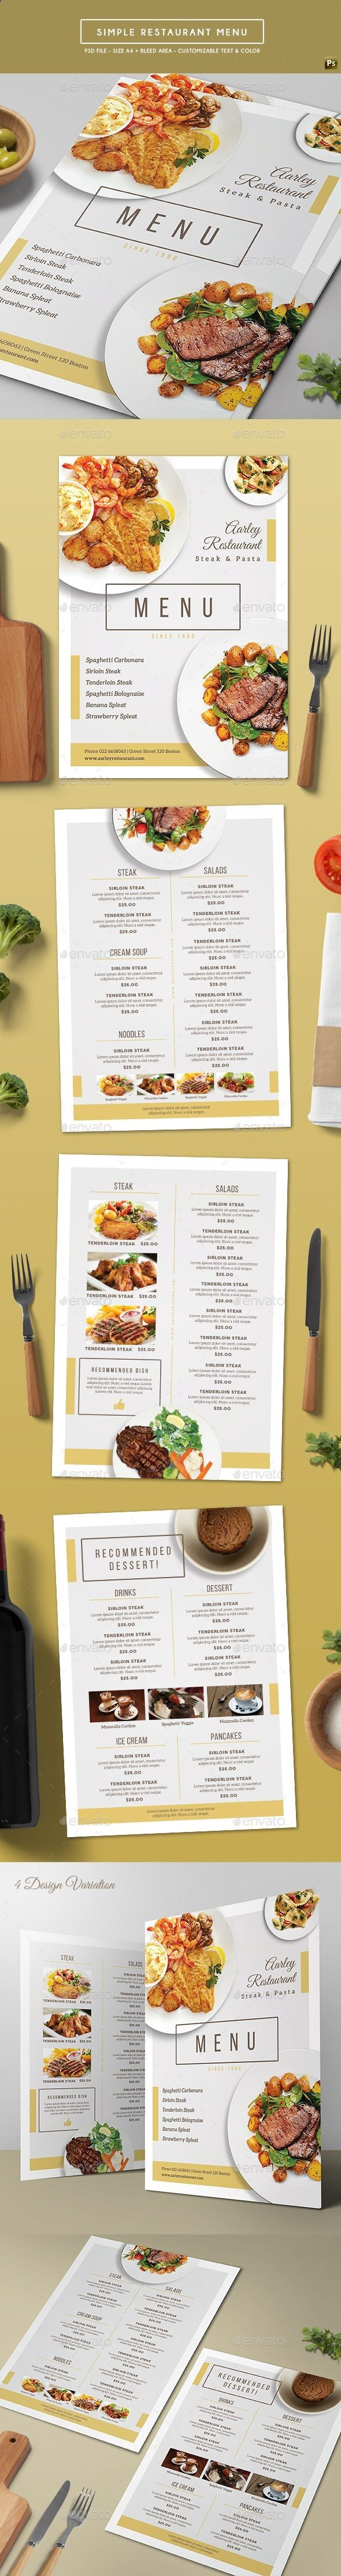 Simple Restaurant Menu Design Template  Food Menus Print Template